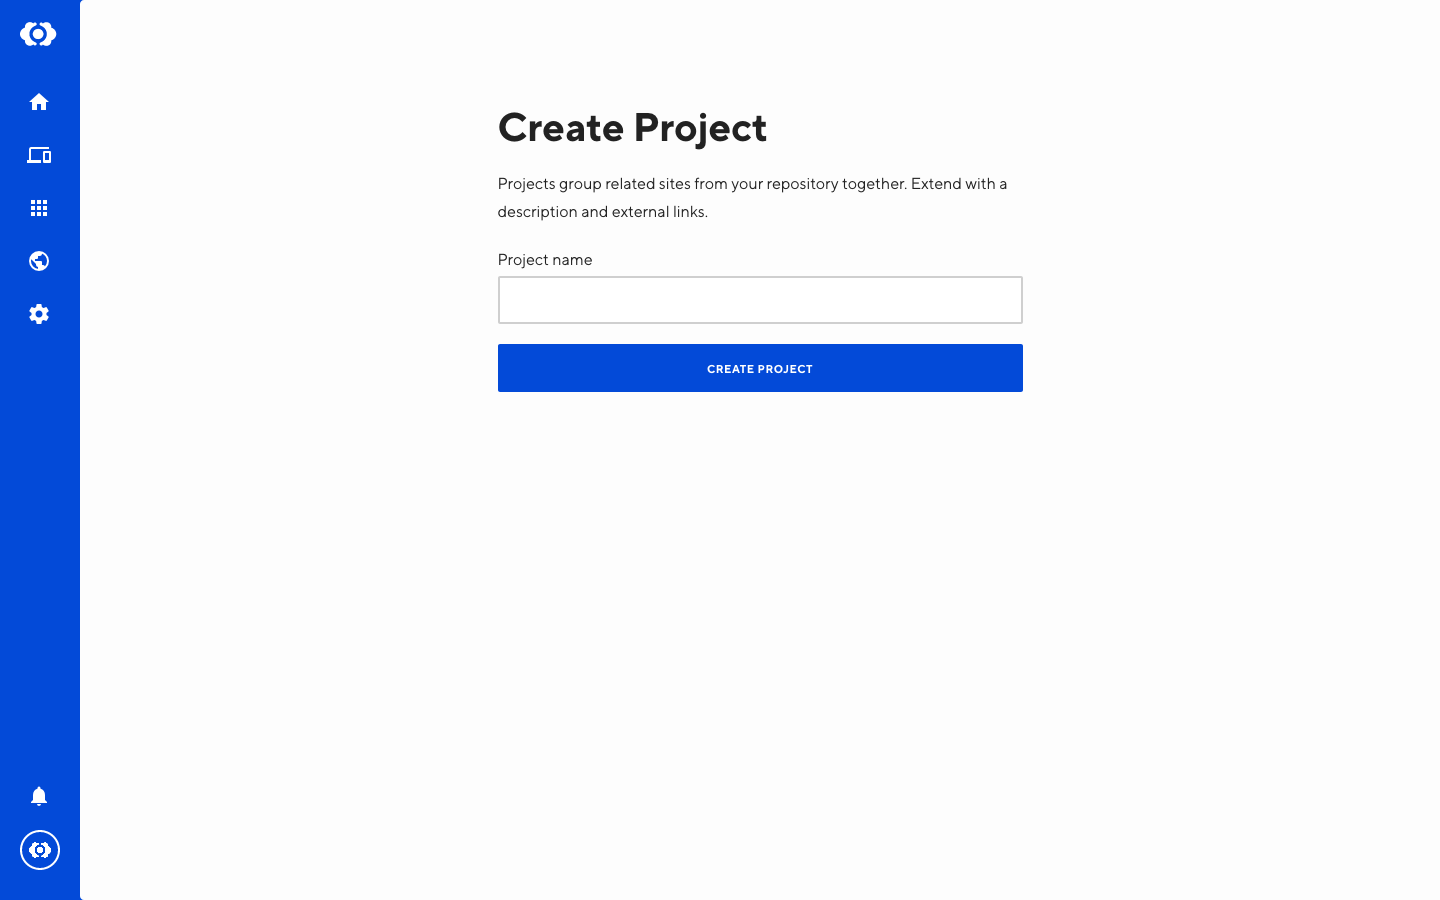 Screenshot of Project creation interface